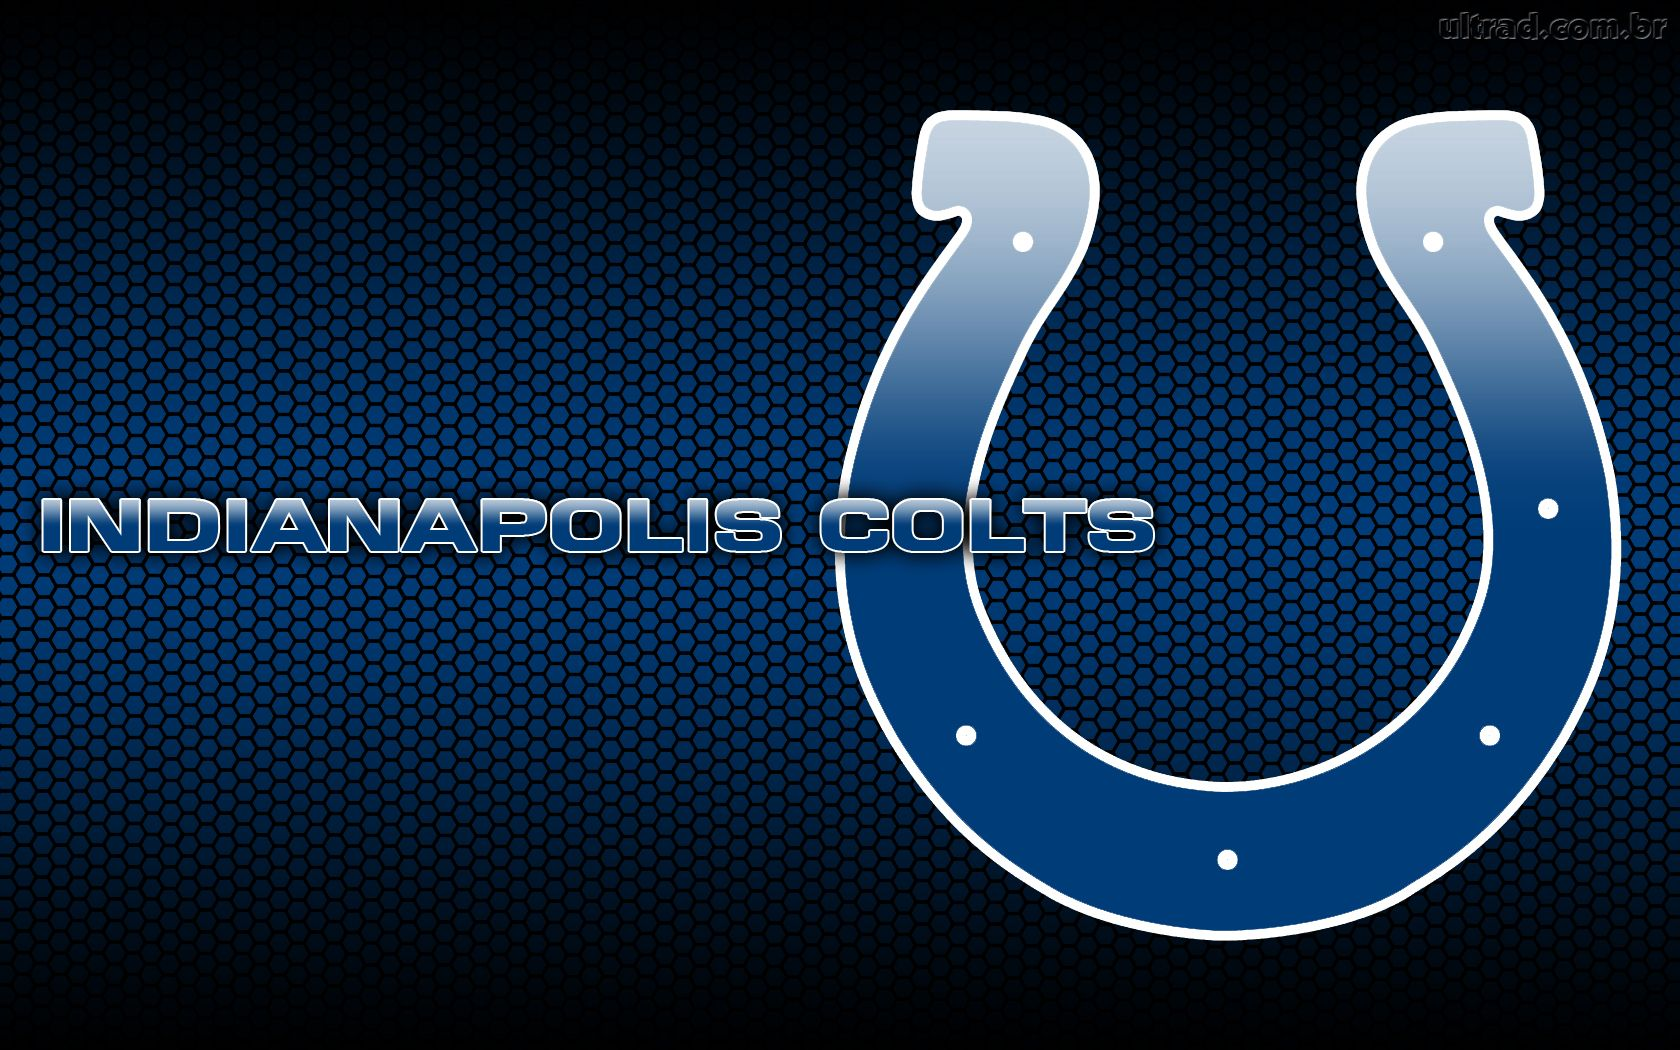 Indianapolis Colts wallpaper wallpaper Indianapolis Colts wallpapers 1680x1050